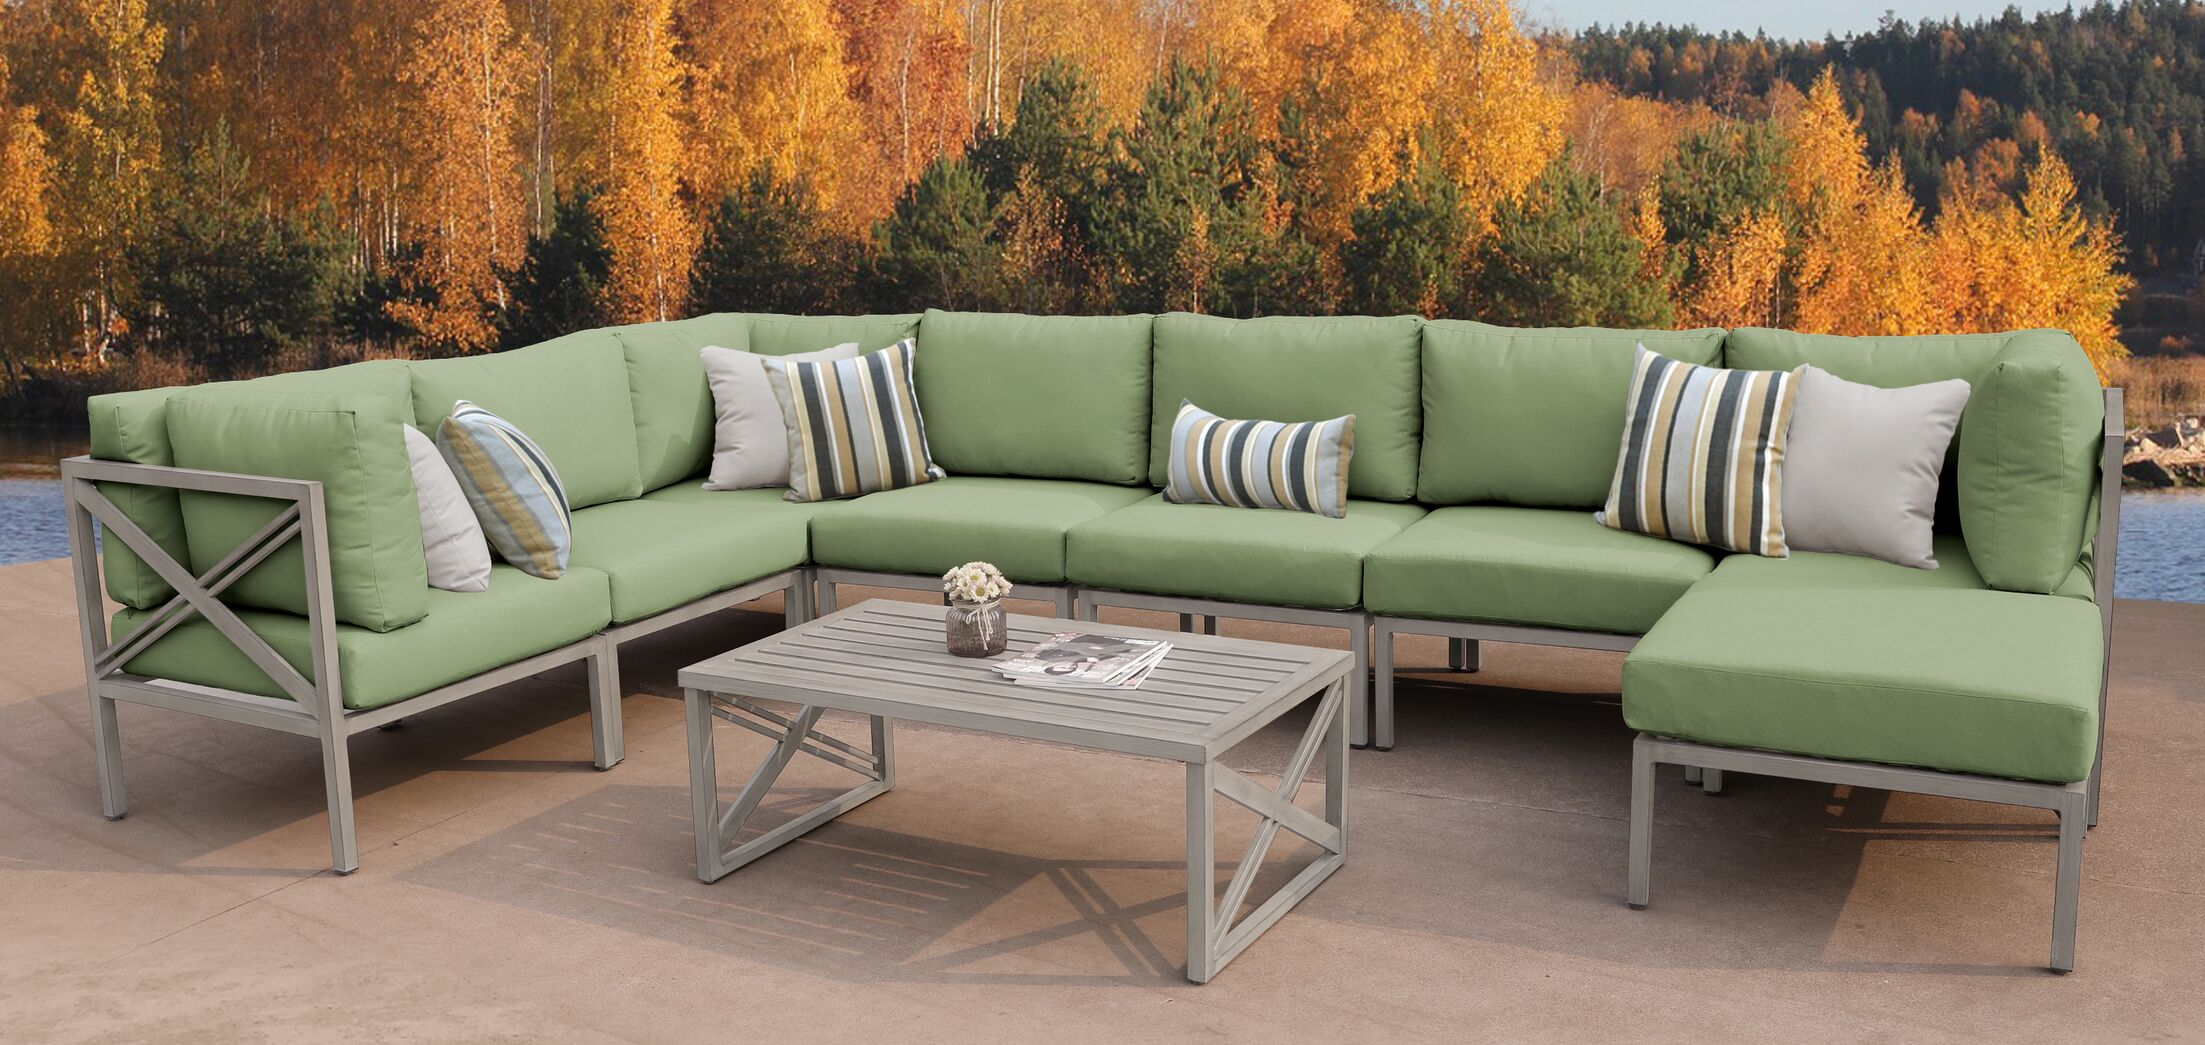 Carlisle 9 Piece Outdoor Sectional Set with Cushions Cushion Color: Cilantro